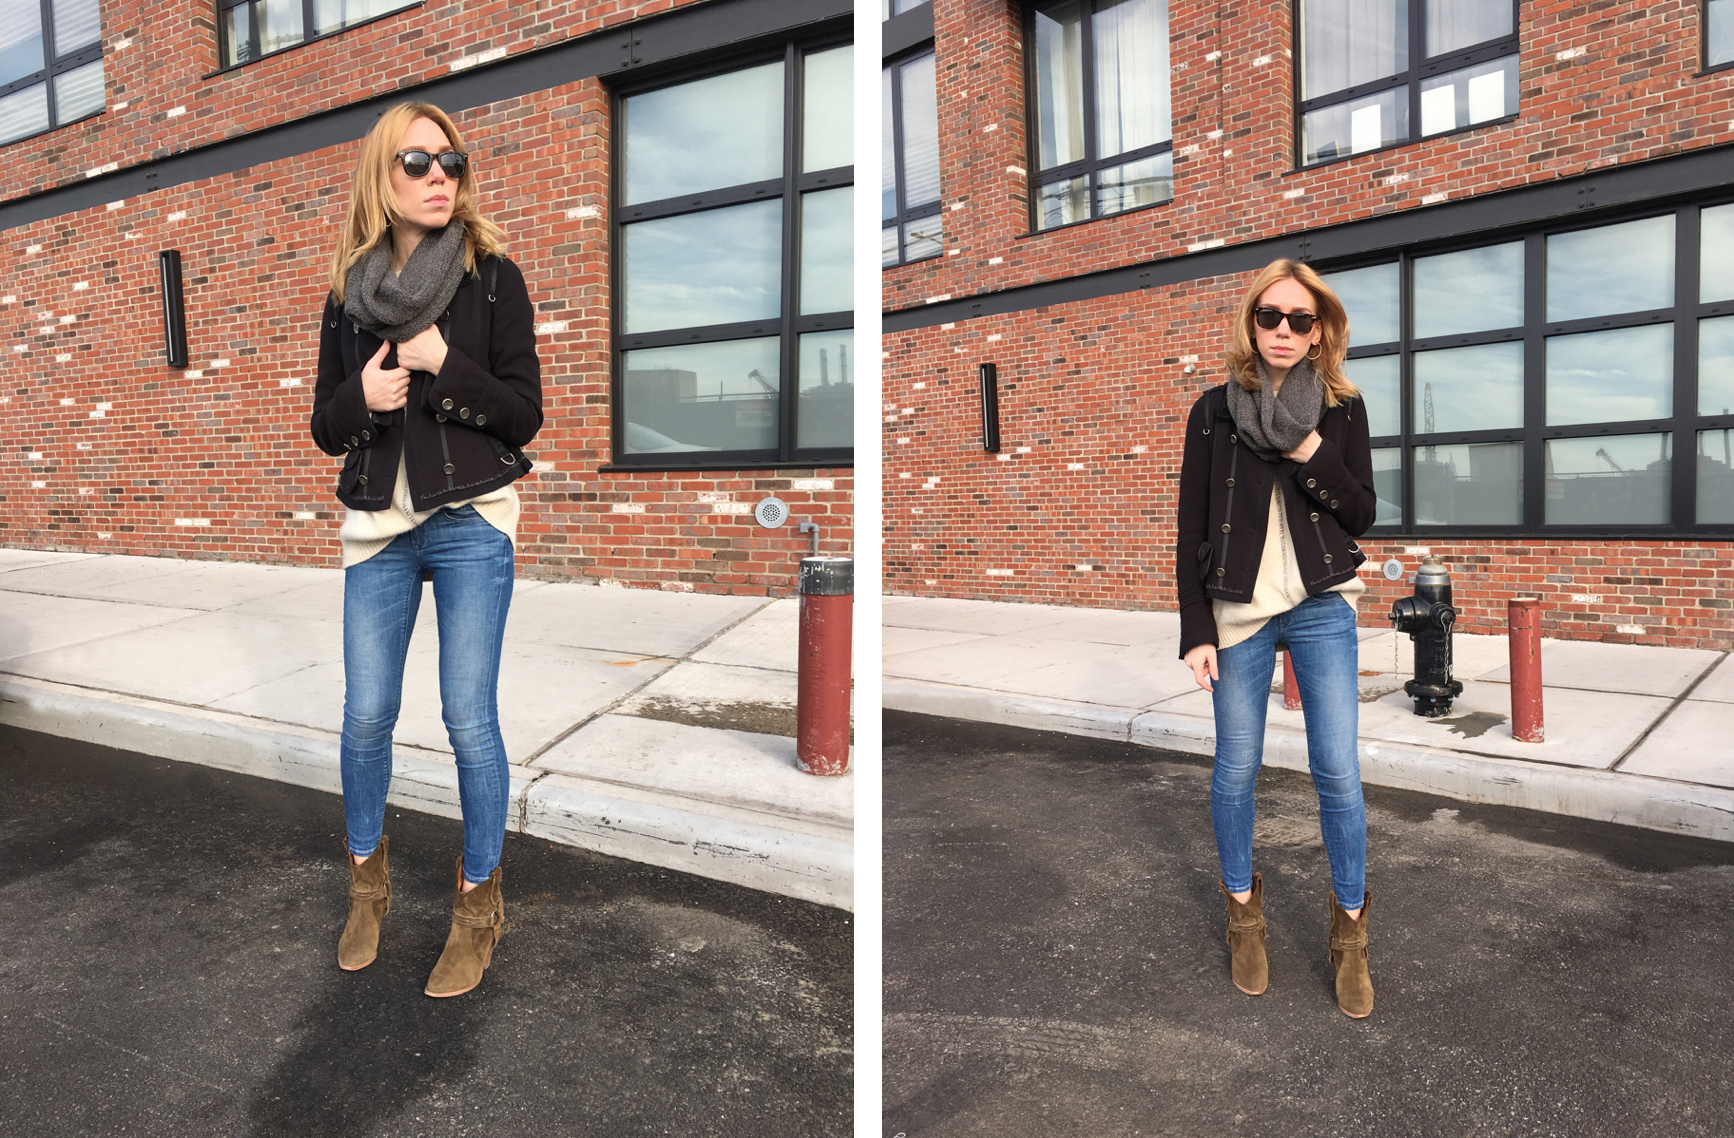 Two images of woman posing in jeans, beige sweater, and navy coat